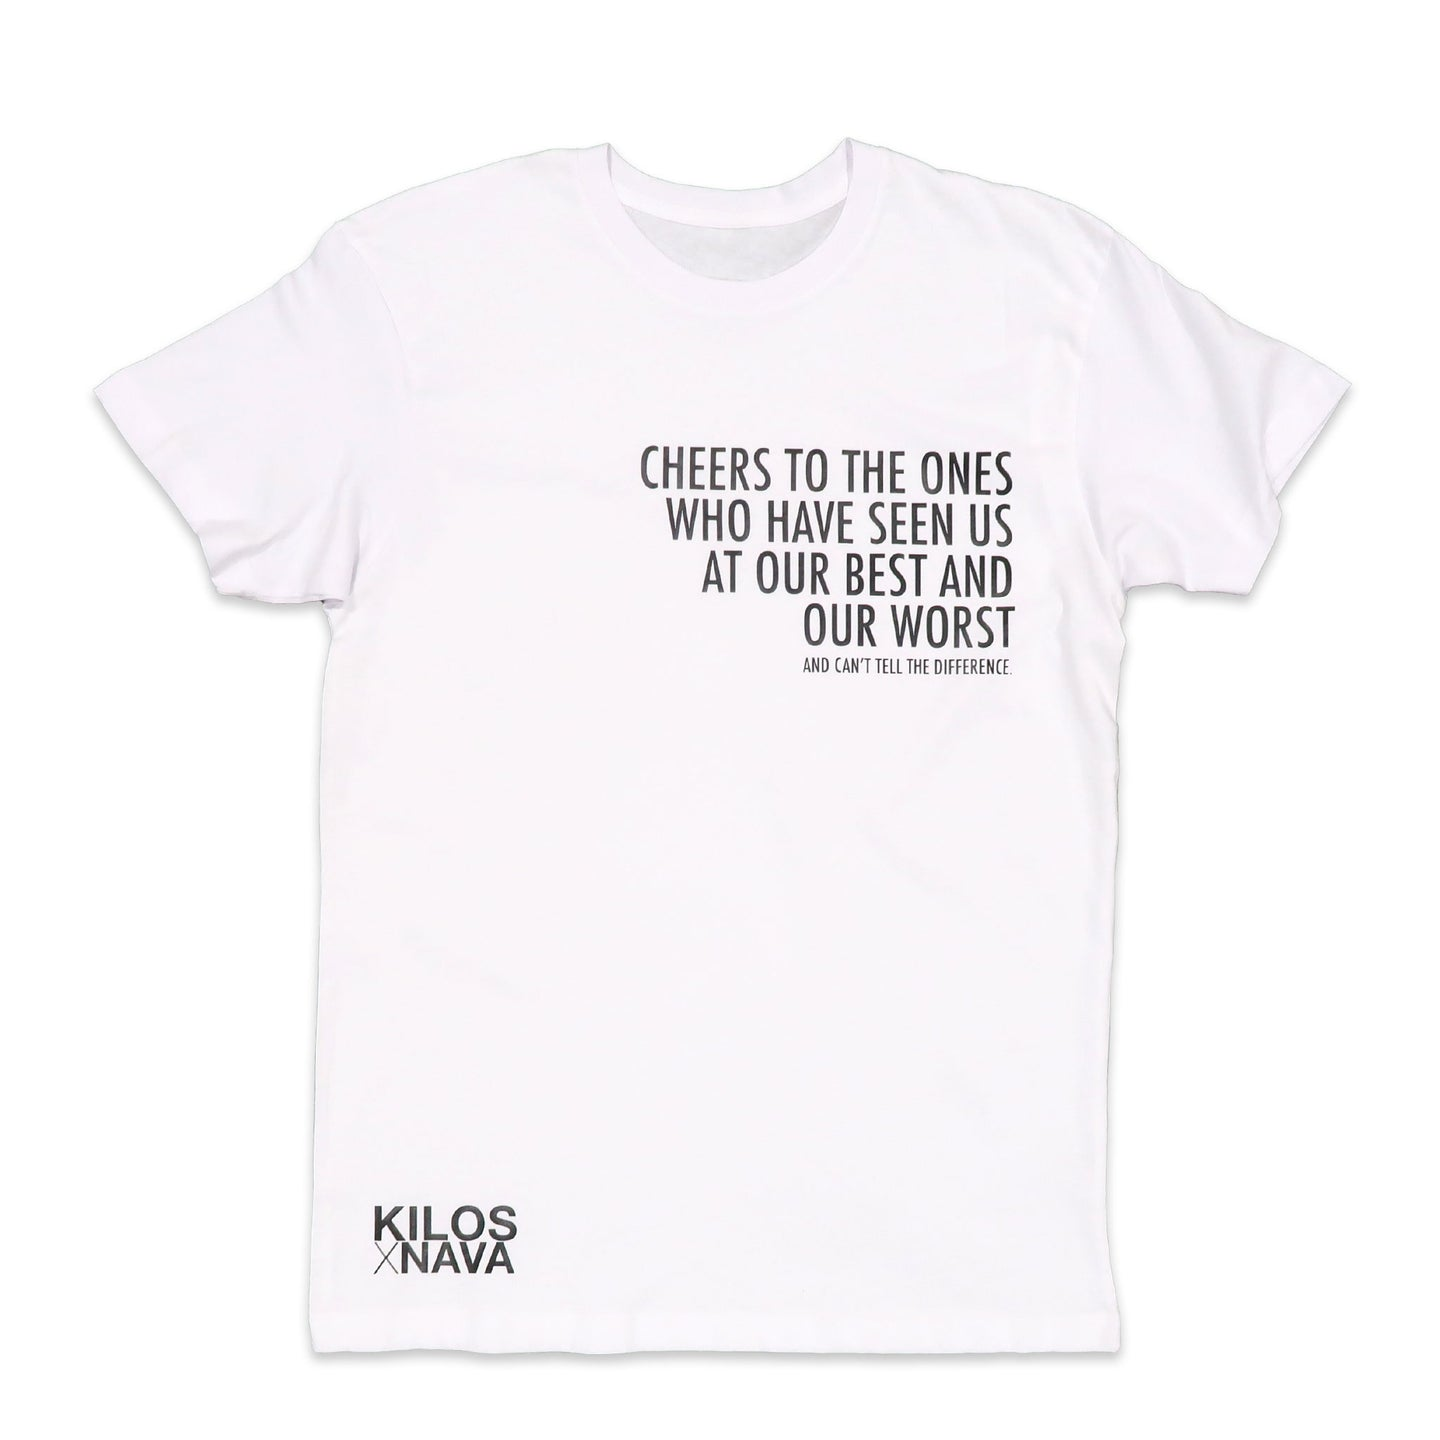 Cheers Tee in White and Black